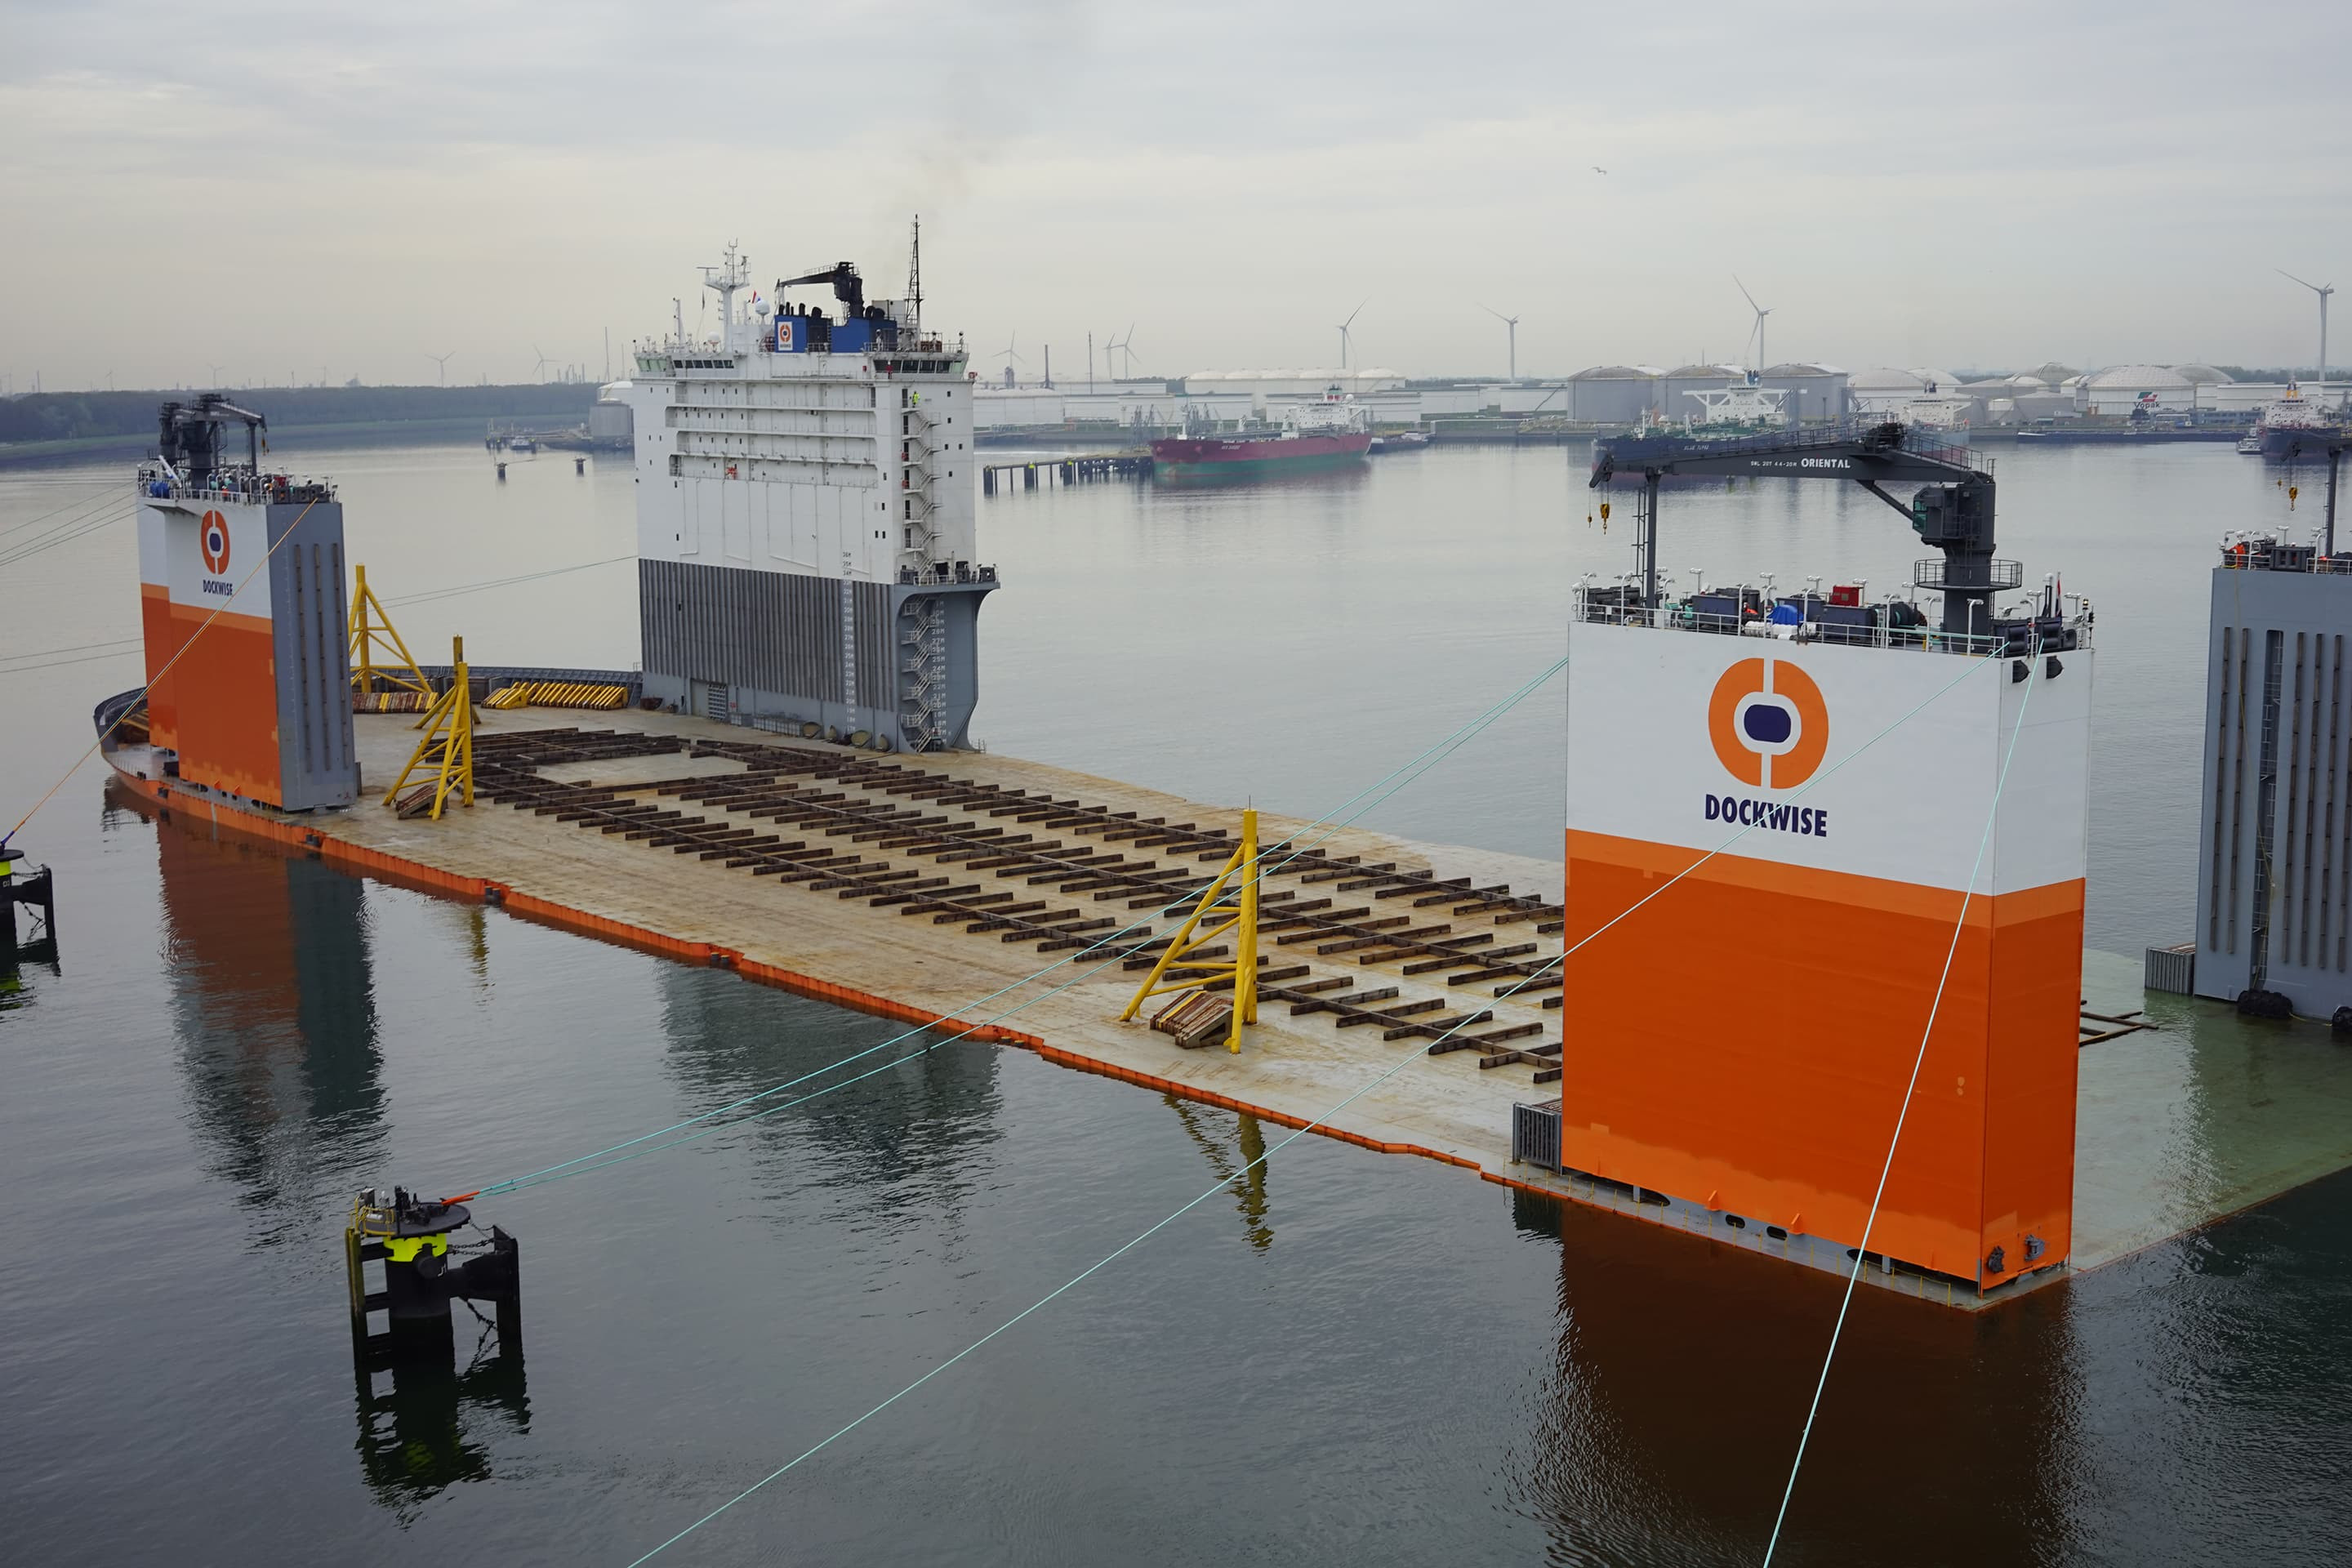 Cribbing wood onboard of the Dockwise Vanguard